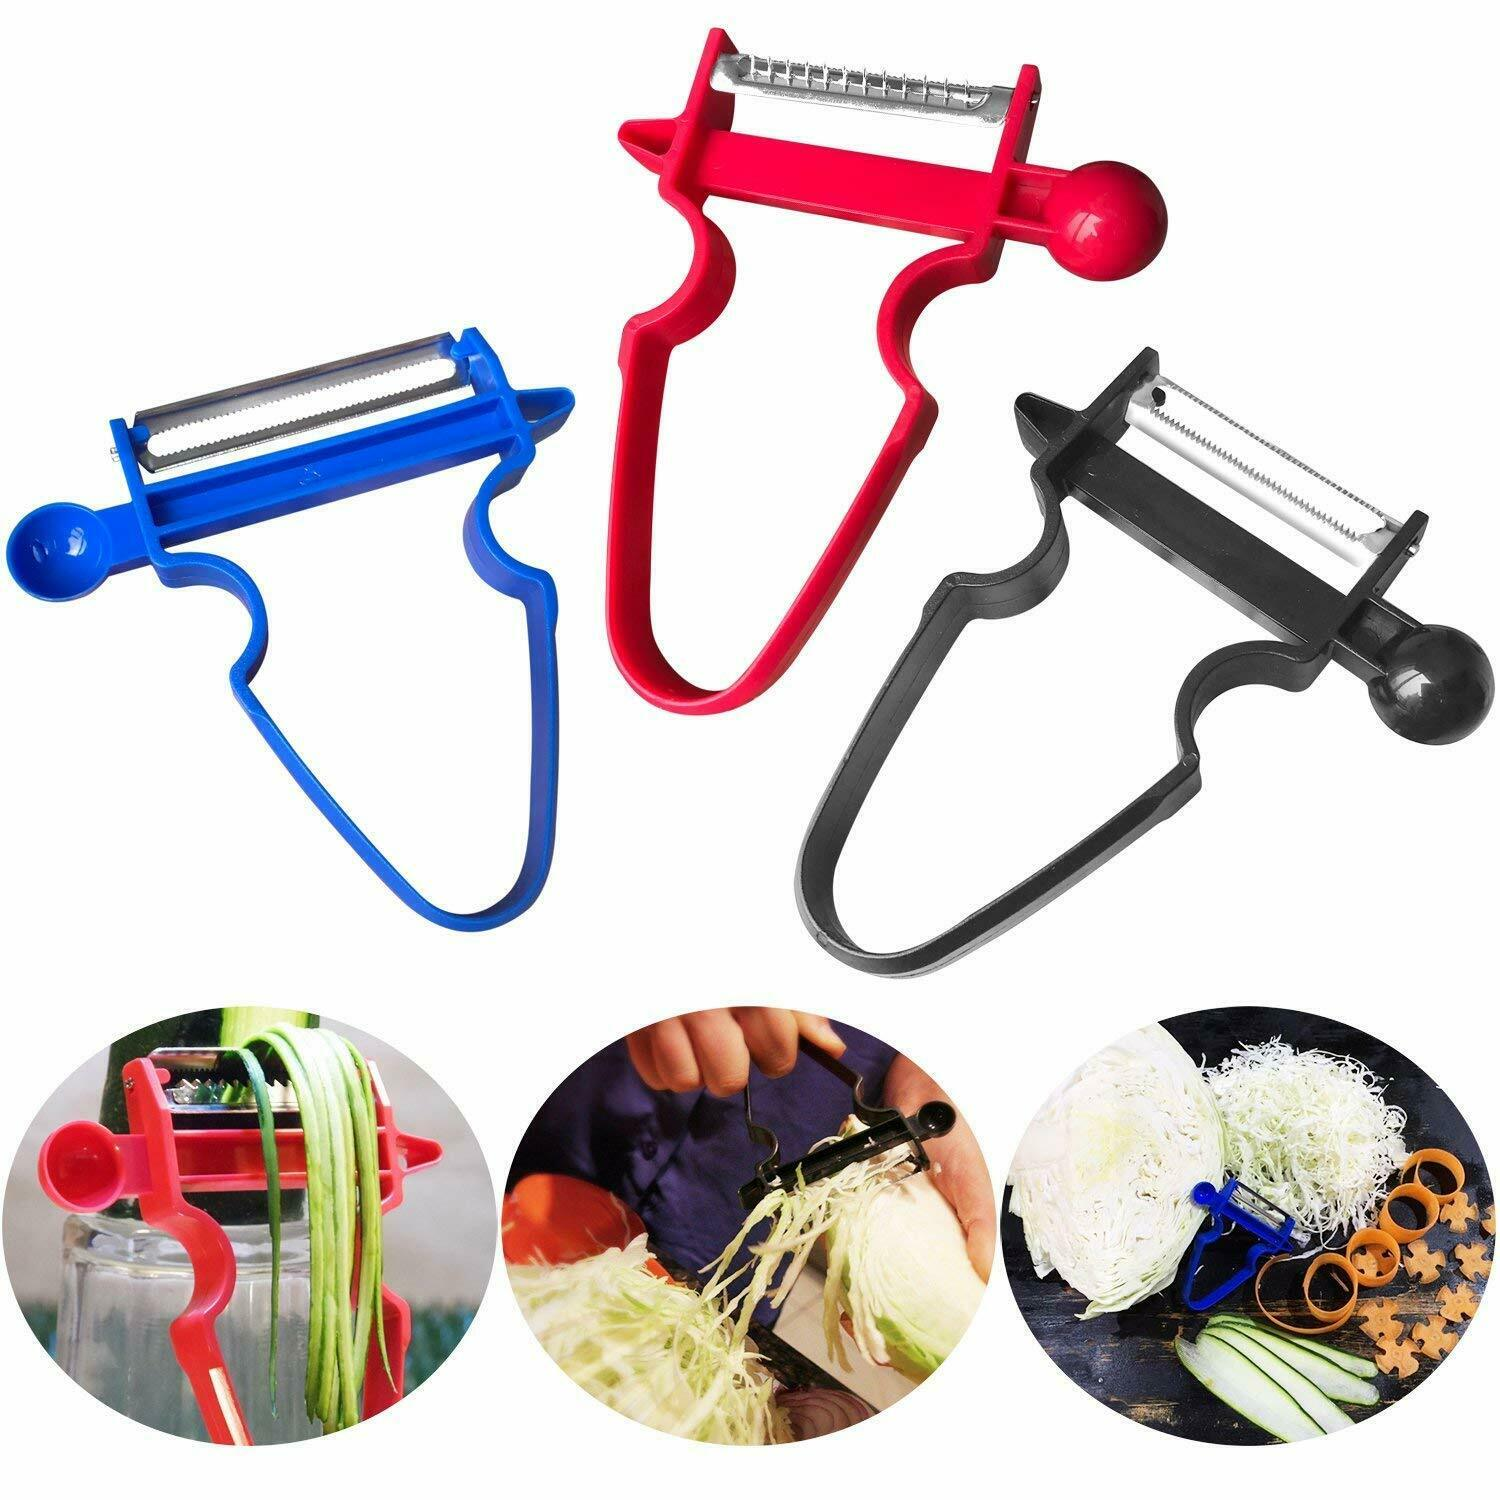 Super Smooth Vegetable Peeler